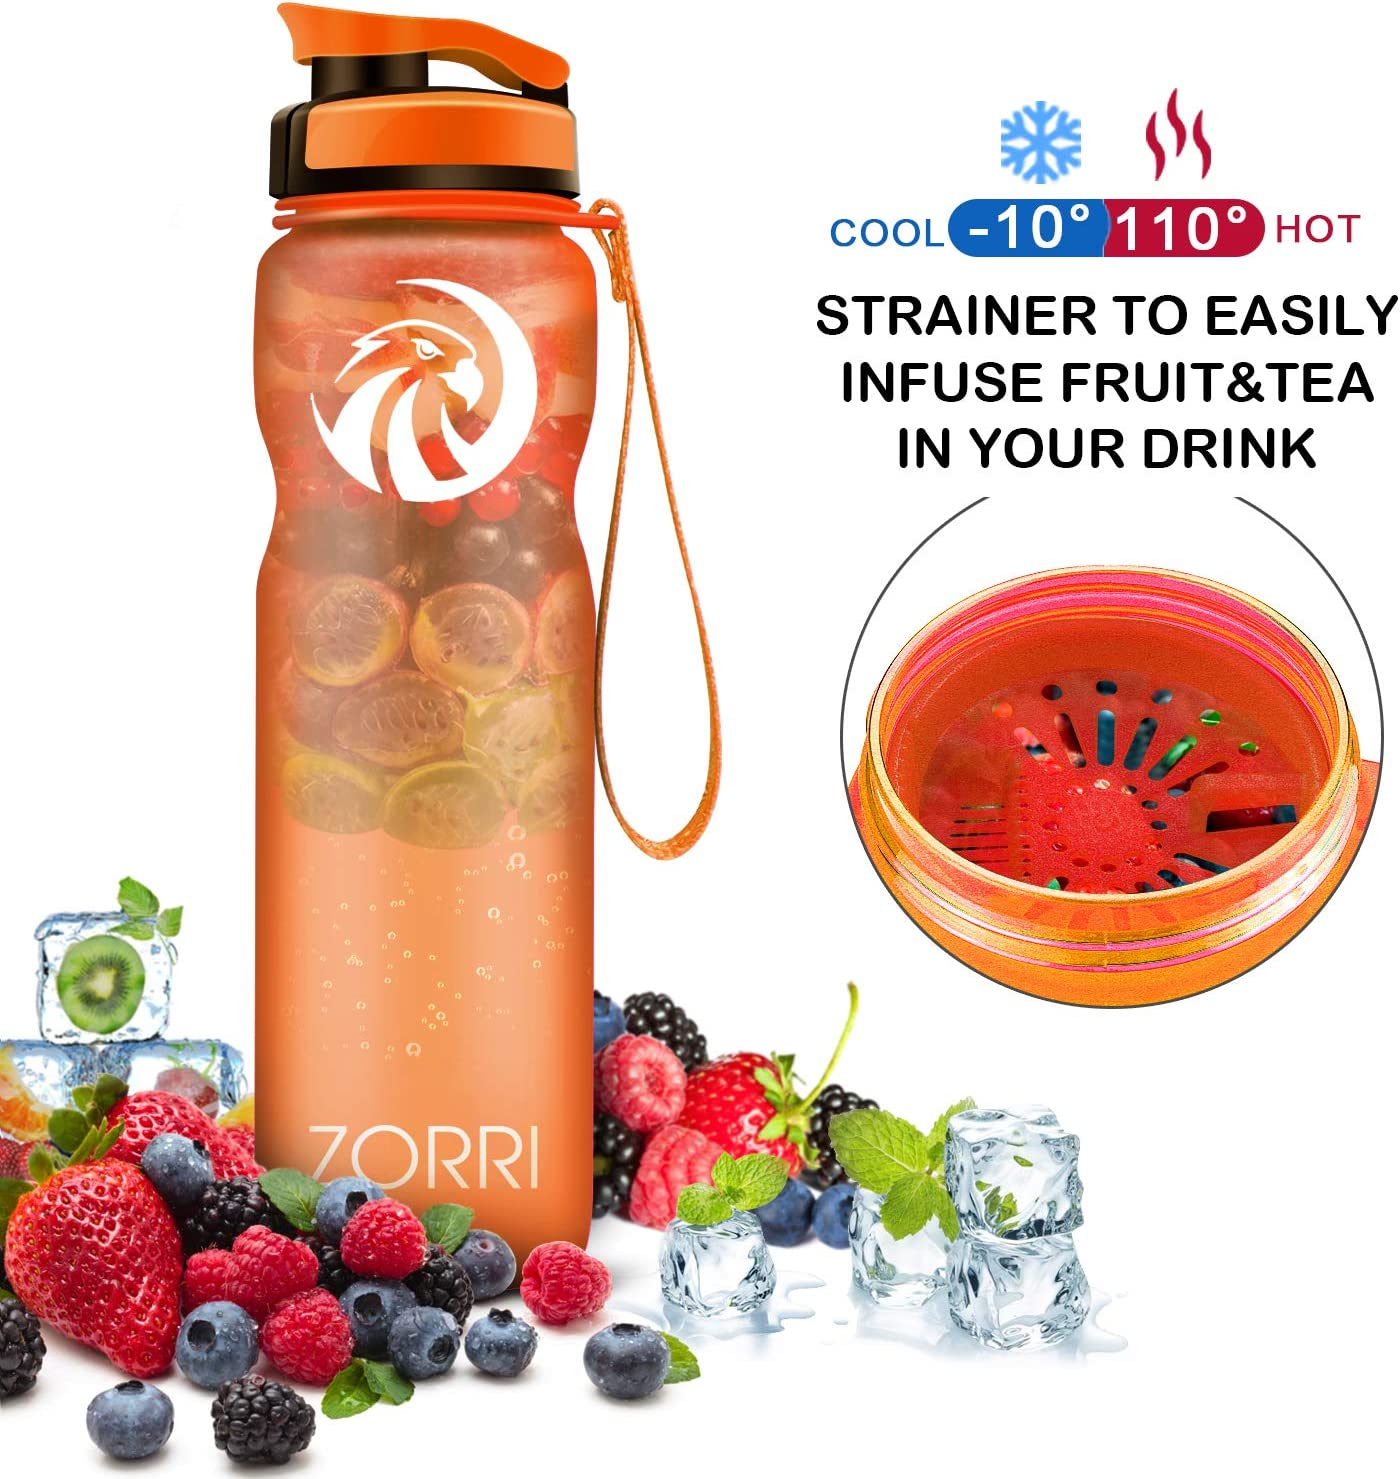 1.2L//1 Liter // 800// 600ml BPA Free Leak Proof Drinking Bottles With Filter /& Flip Top Lid For Gym,Camping,Cycling,Hiking,Yoga,Running Best Sports Water Bottle Eco-Friendly Large Reusable Bottles